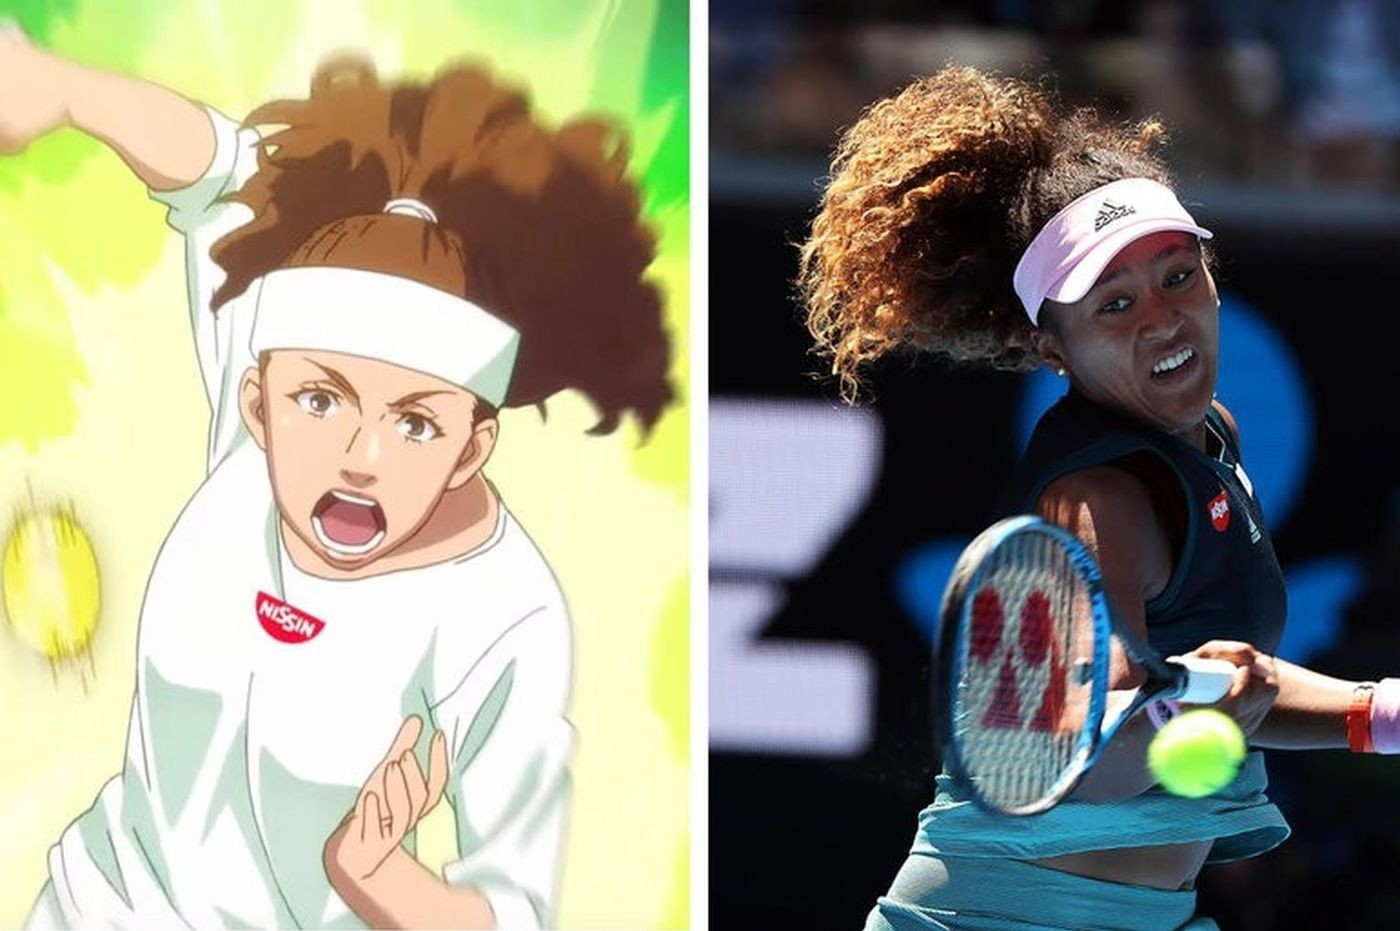 Japanese noodle firm Nissin announced Thursday it was scrapping an ,anime, advert featuring tennis star Naomi Osaka. (REUTERS Photo)